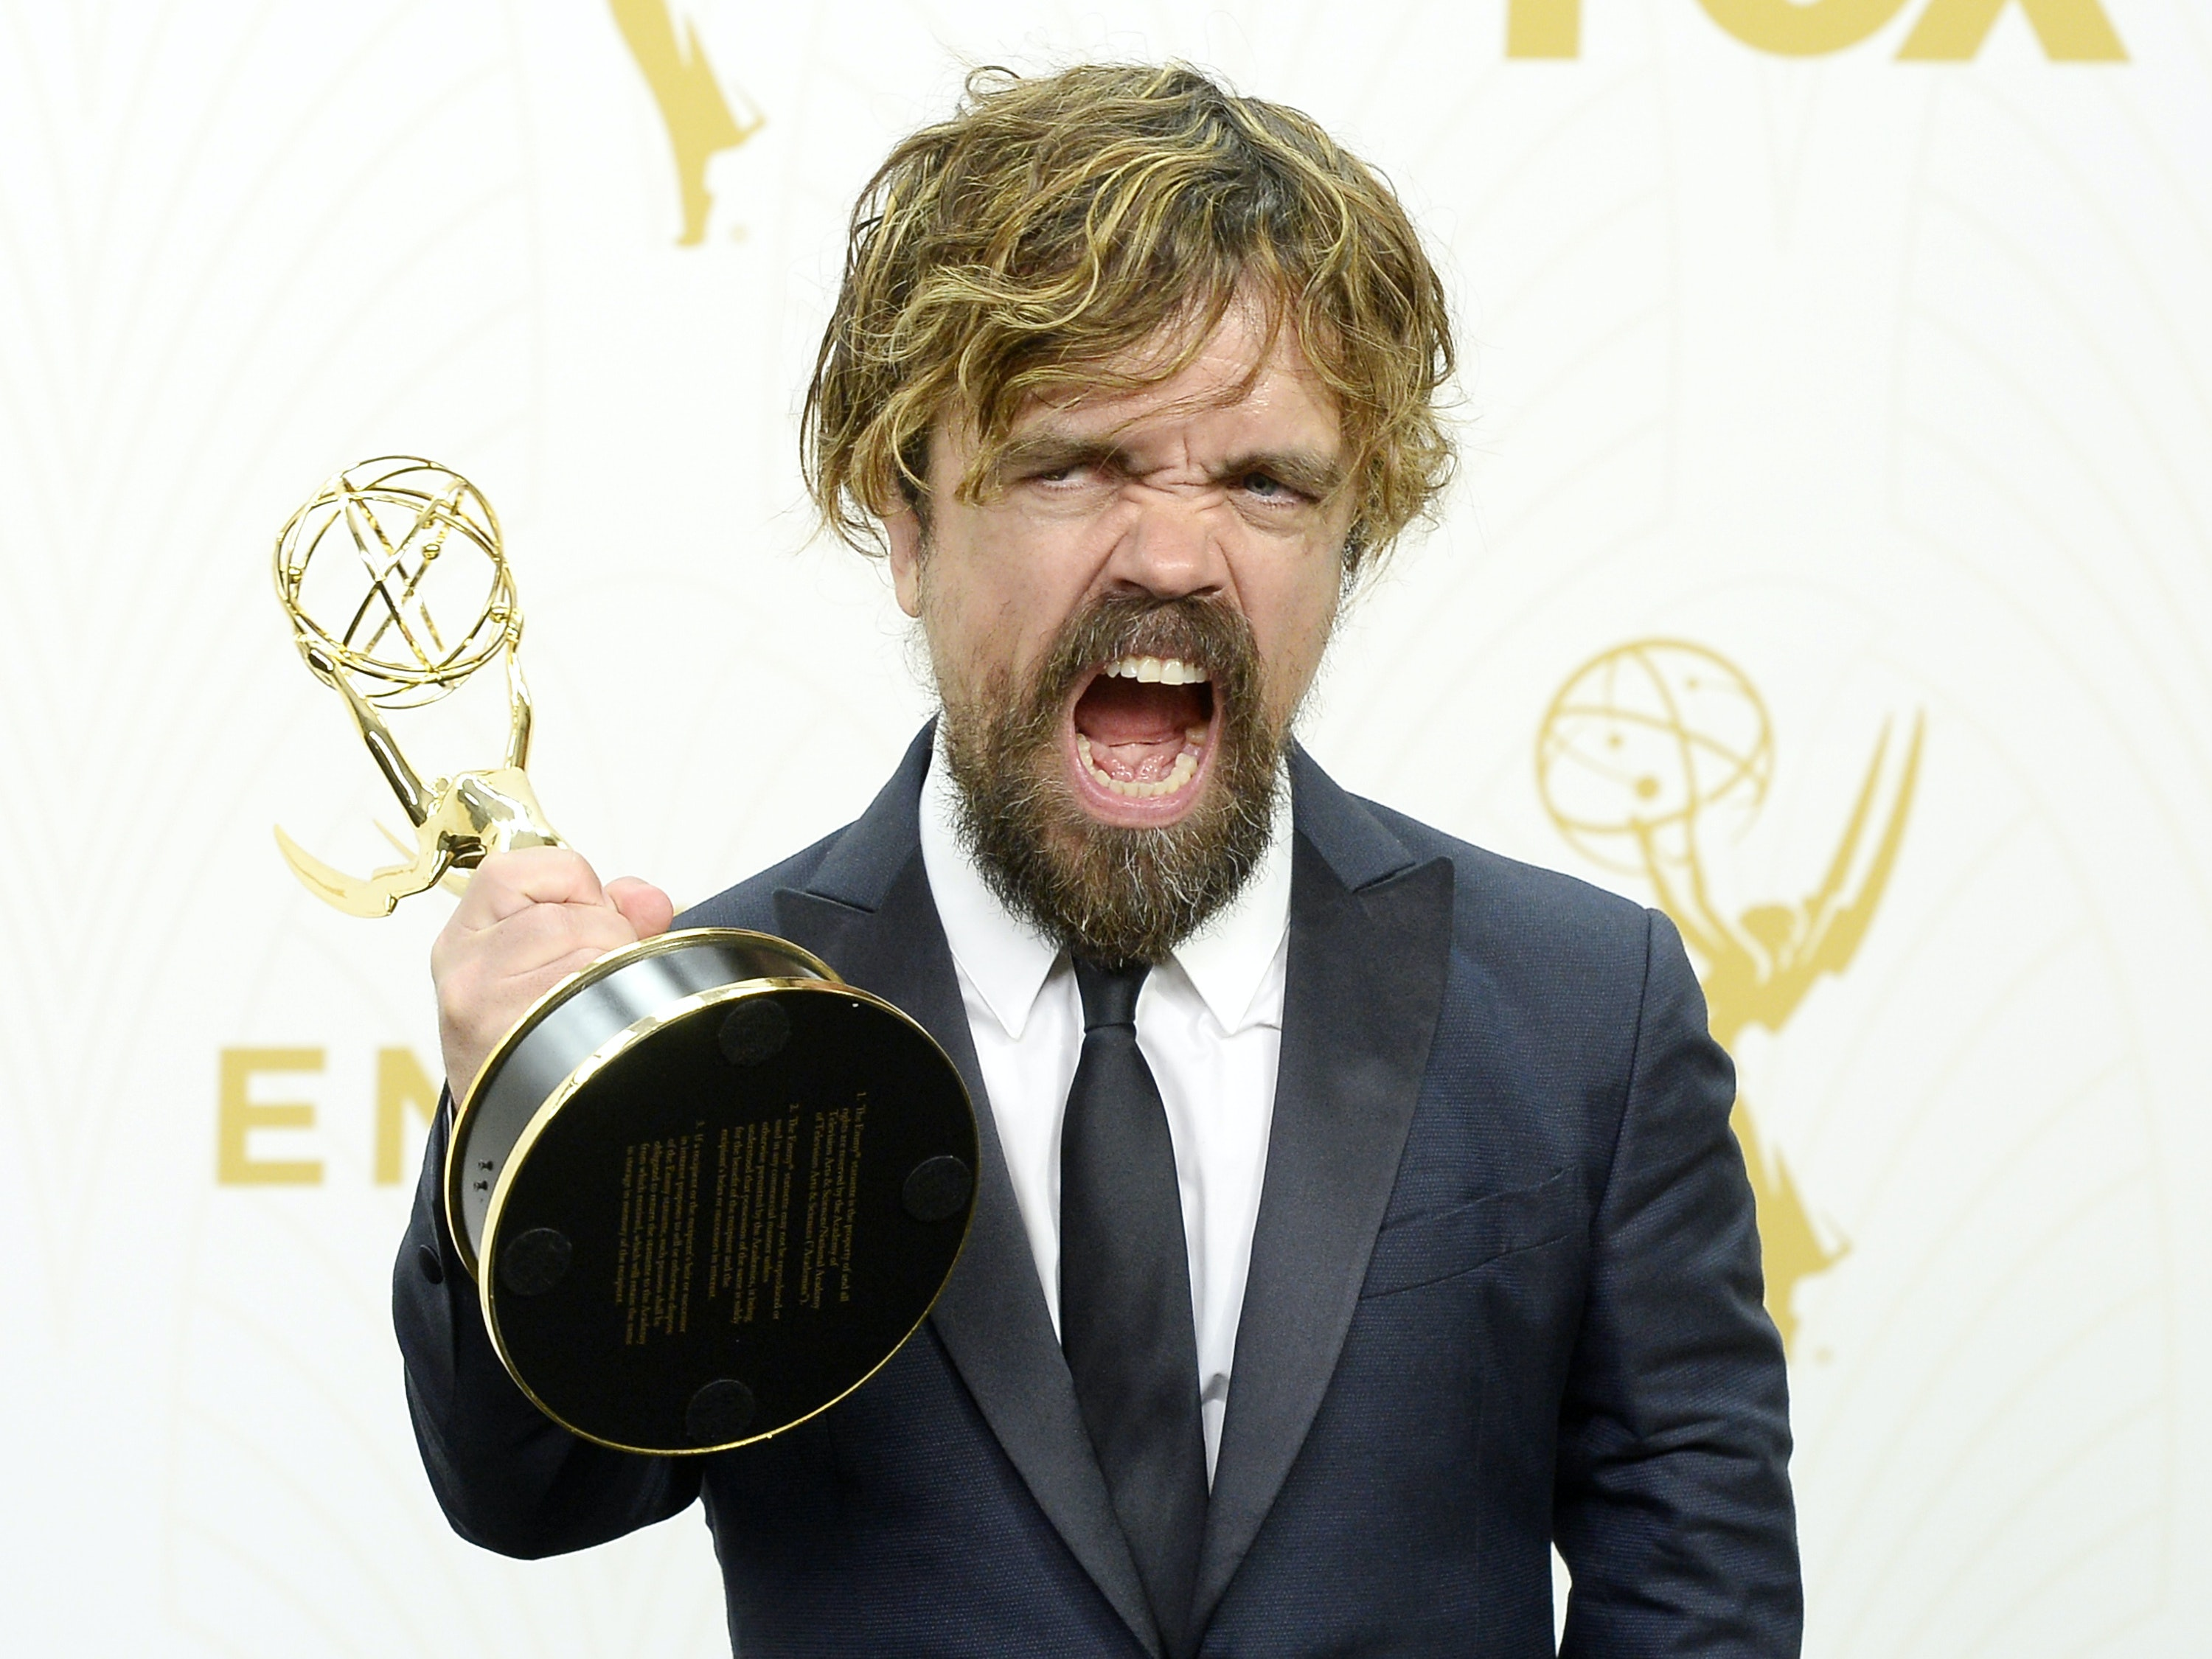 Actor Peter Dinklage, winner of Outstanding Supporting Actor in a Drama Series for 'Game of Thrones', poses in the press room at the 67th Annual Primetime Emmy Awards at Microsoft Theater on September 20, 2015 in Los Angeles, California.